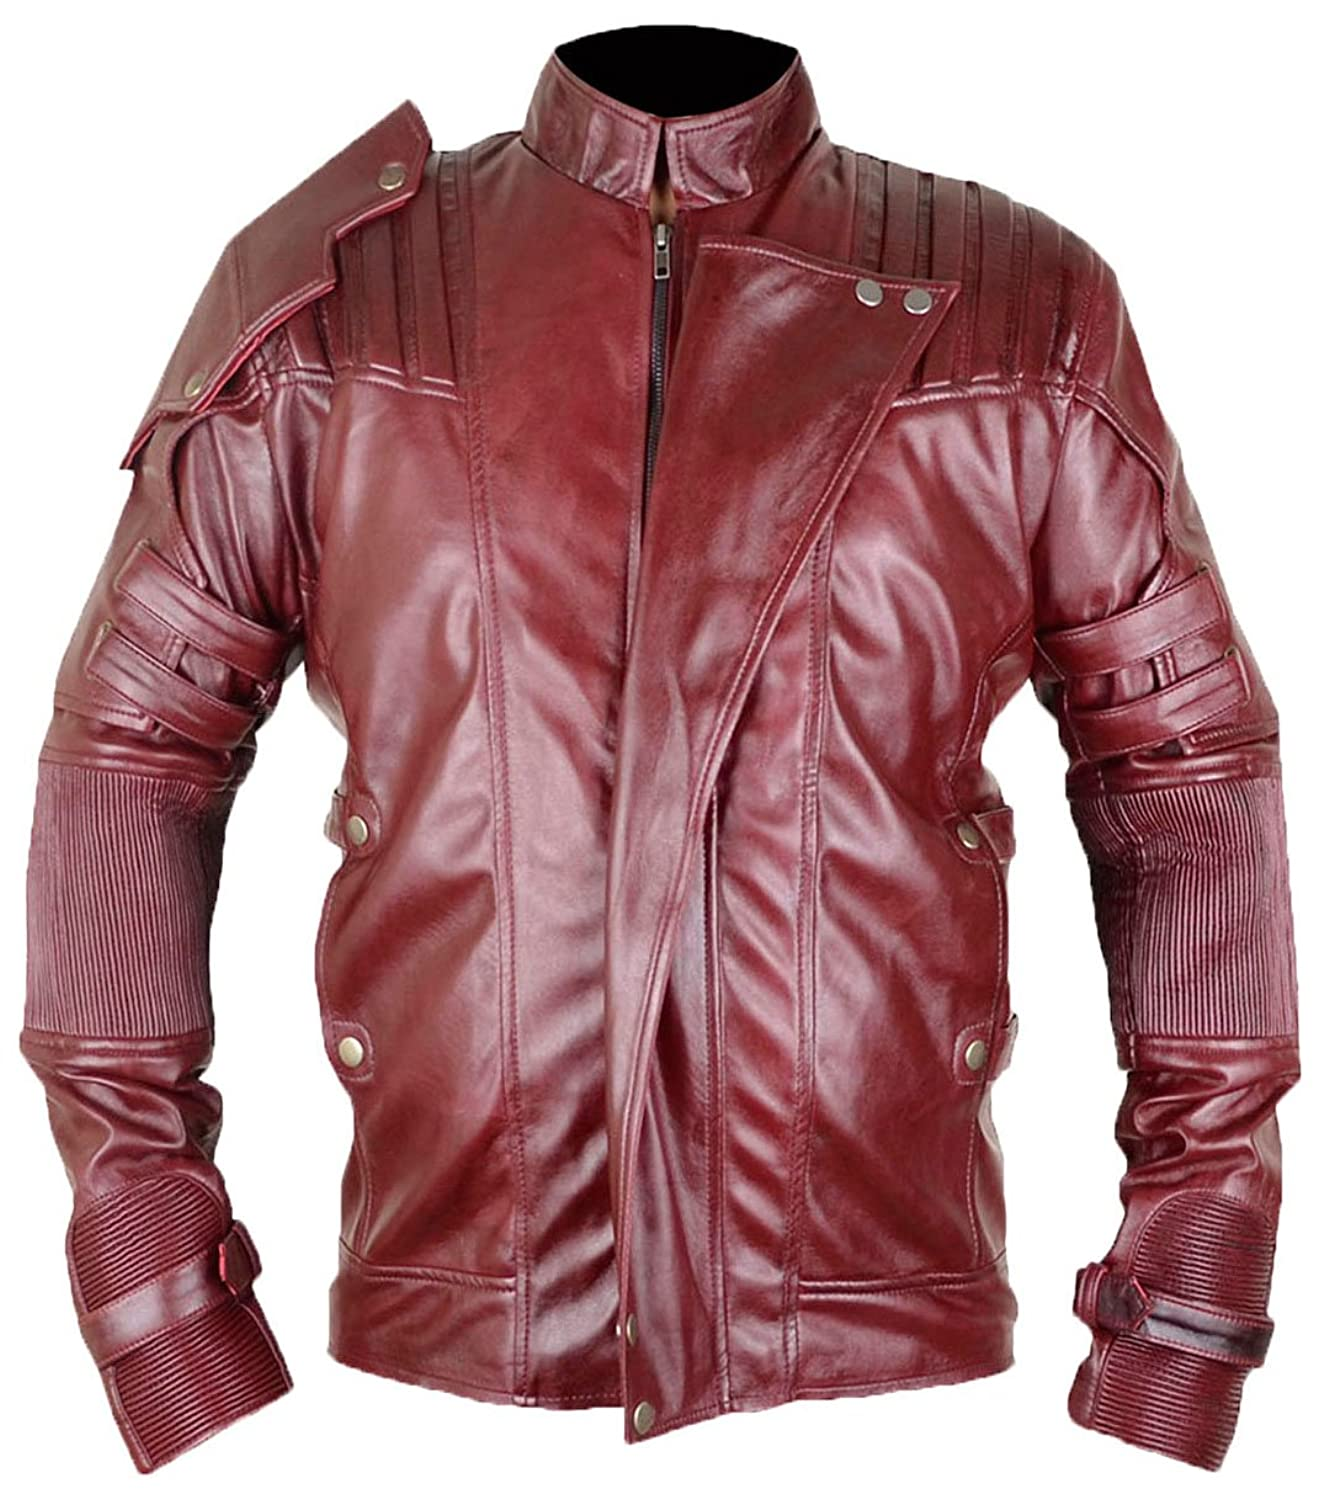 Adult Guardians of The Galaxy 2 Star-Lord Peter Quill Faux Leather Jackets